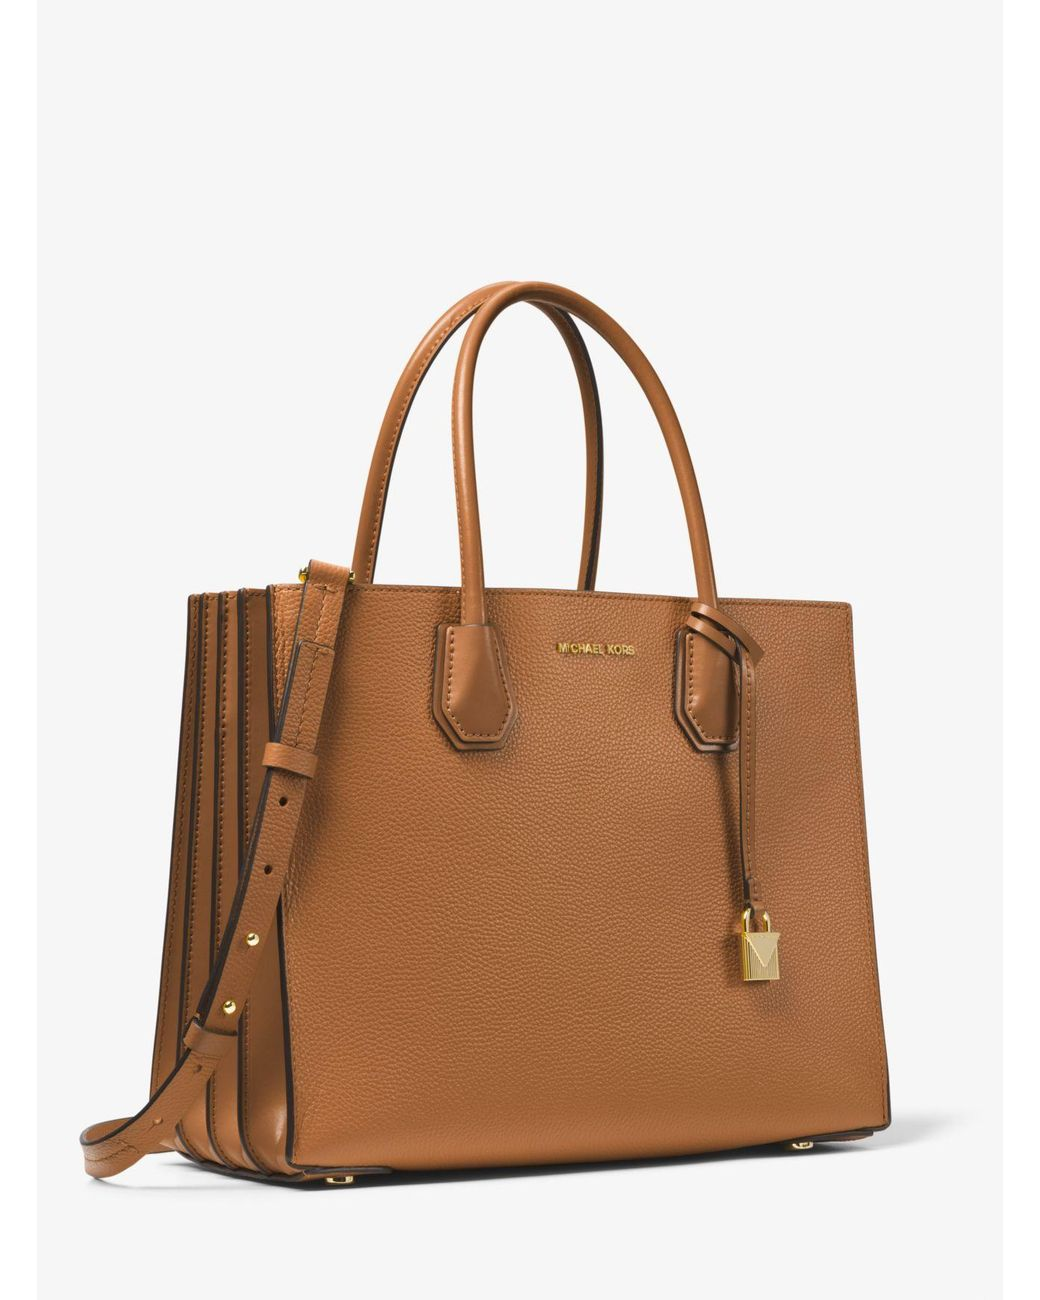 4059c50dd7b897 Michael Kors Mercer Large Pebbled Leather Accordion Tote Bag in Brown -  Save 55% - Lyst